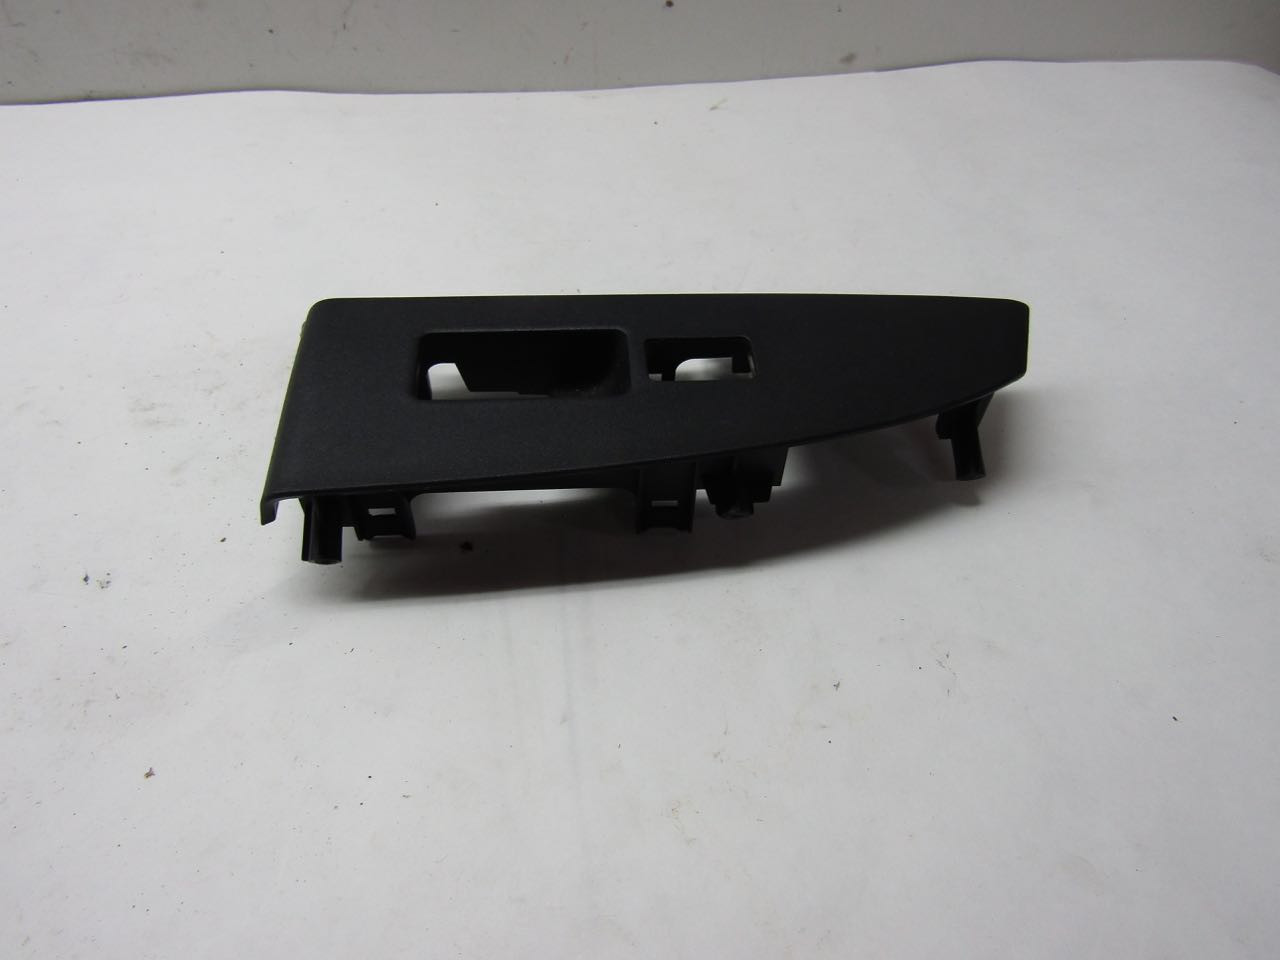 2008 Infiniti G37 Coupe Passenger Door Panel Window And Lock Trim 80960jl30a Quality Factory Autoparts